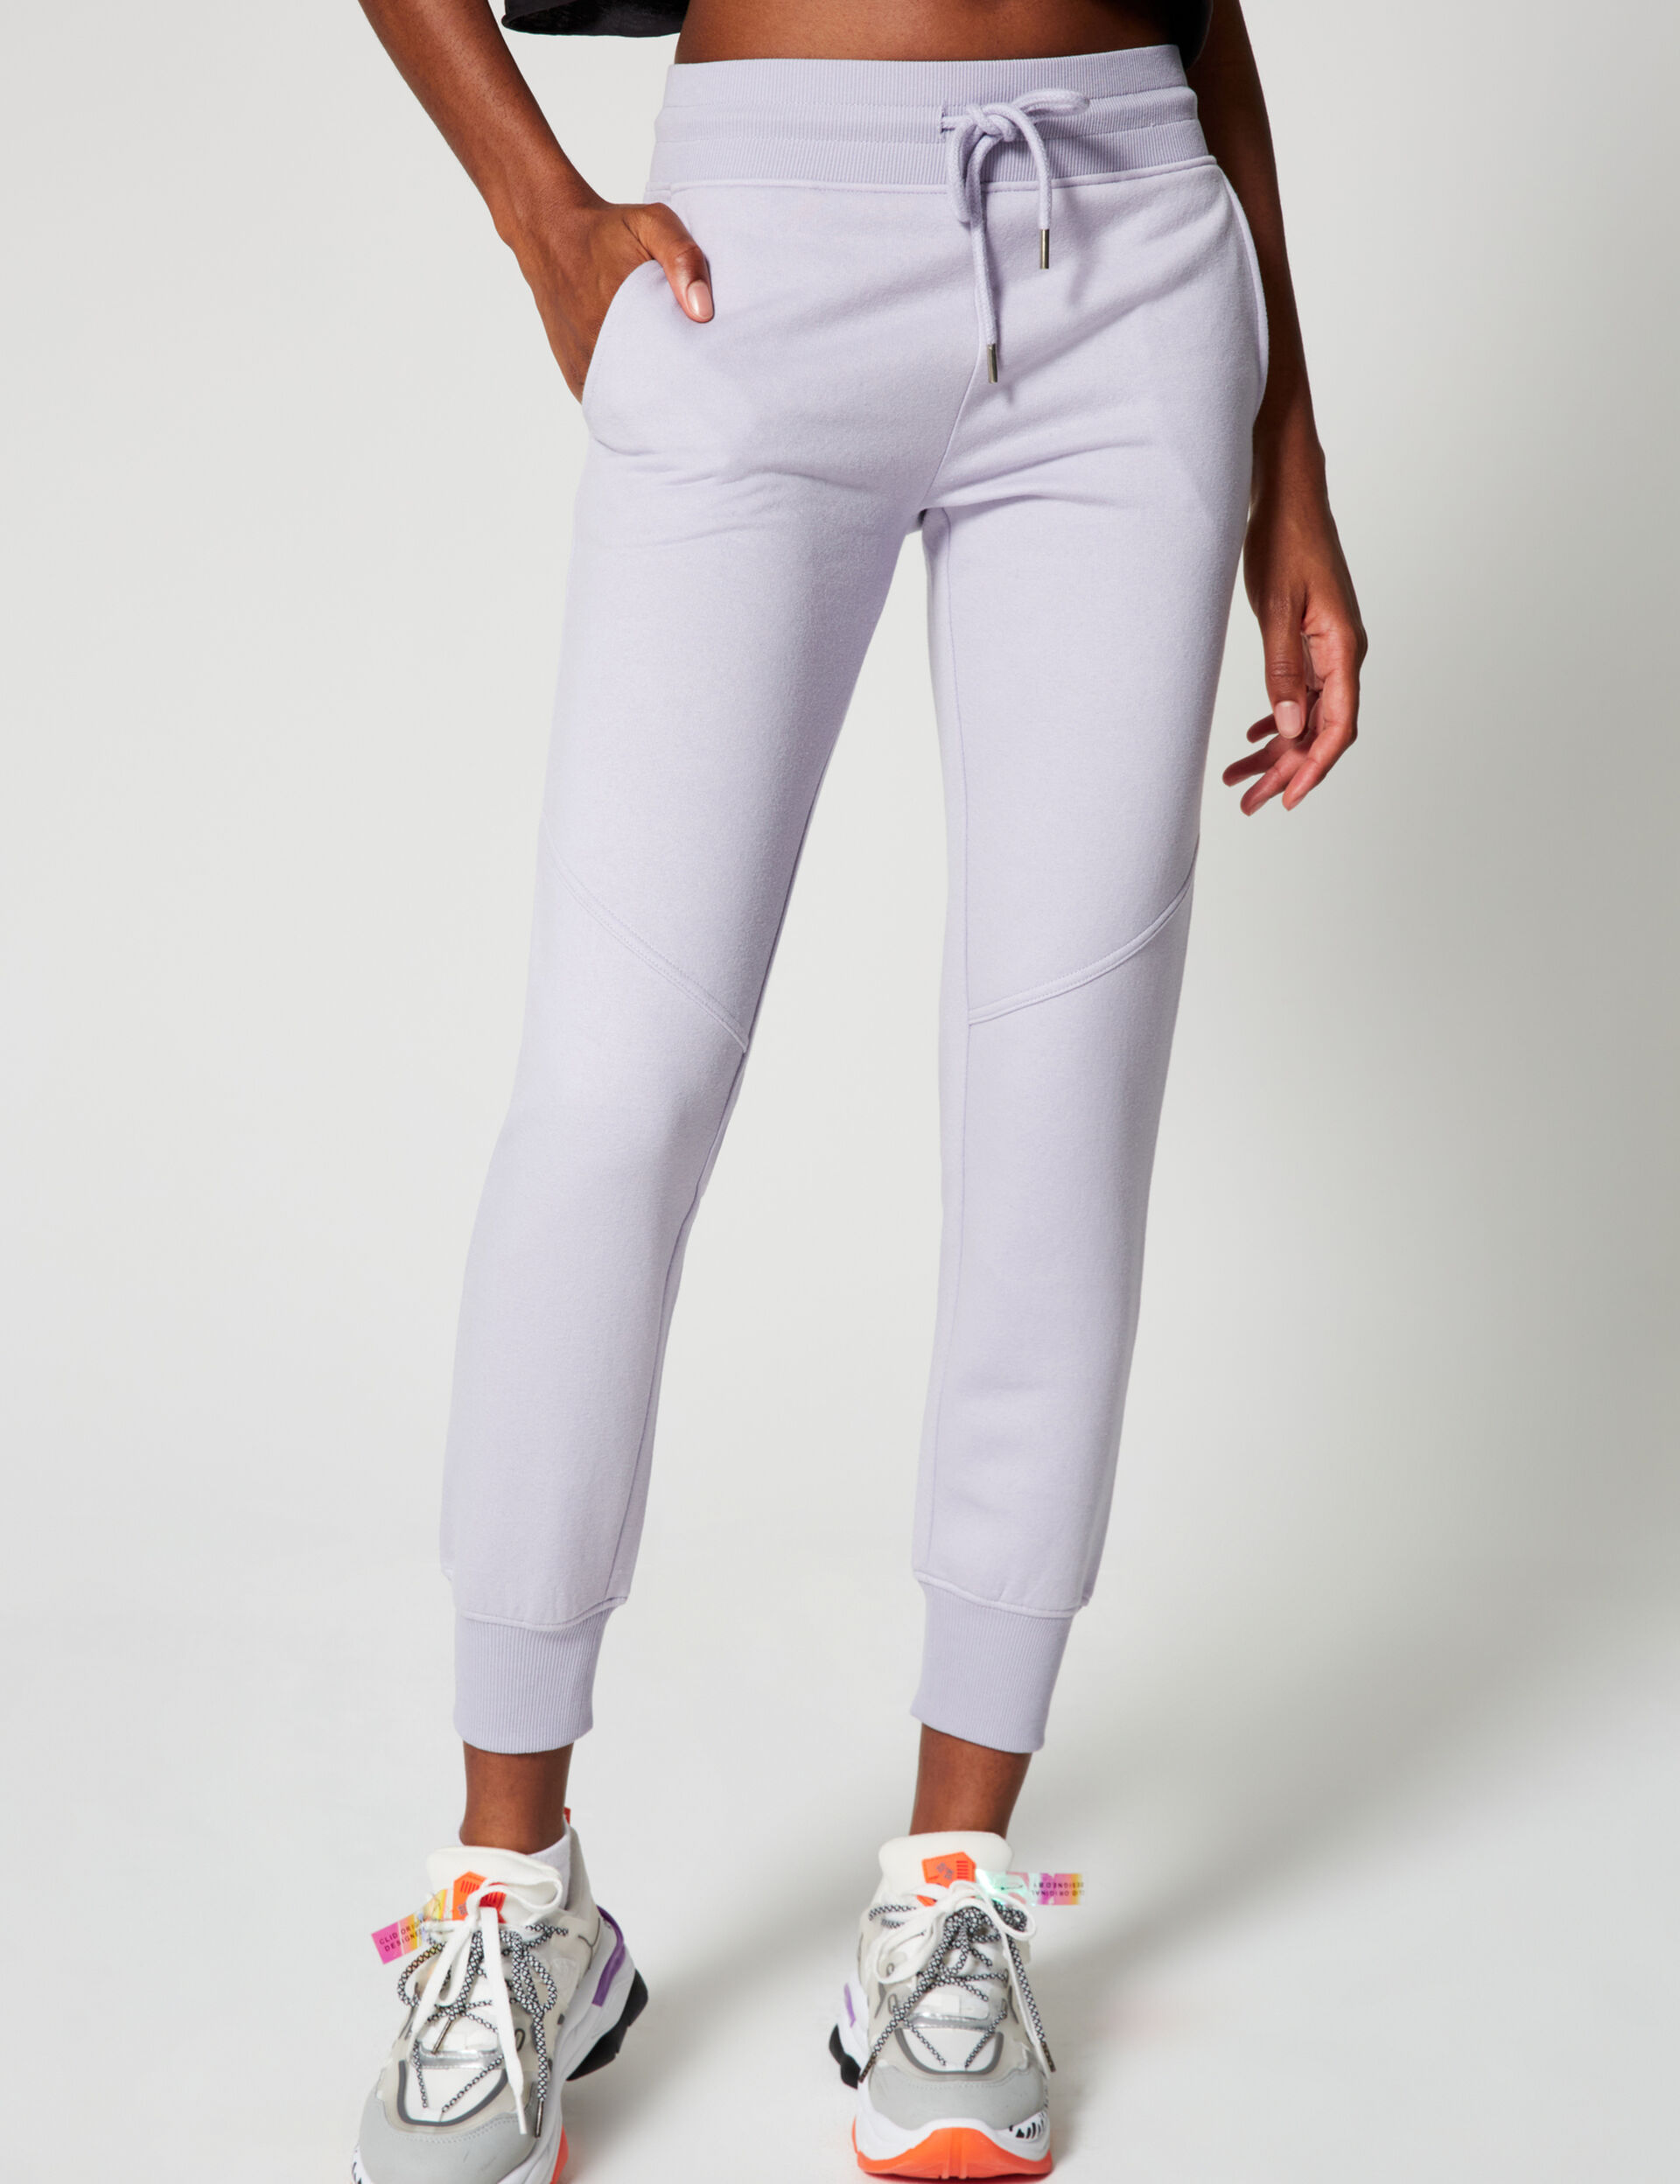 Joggers with stitching detail